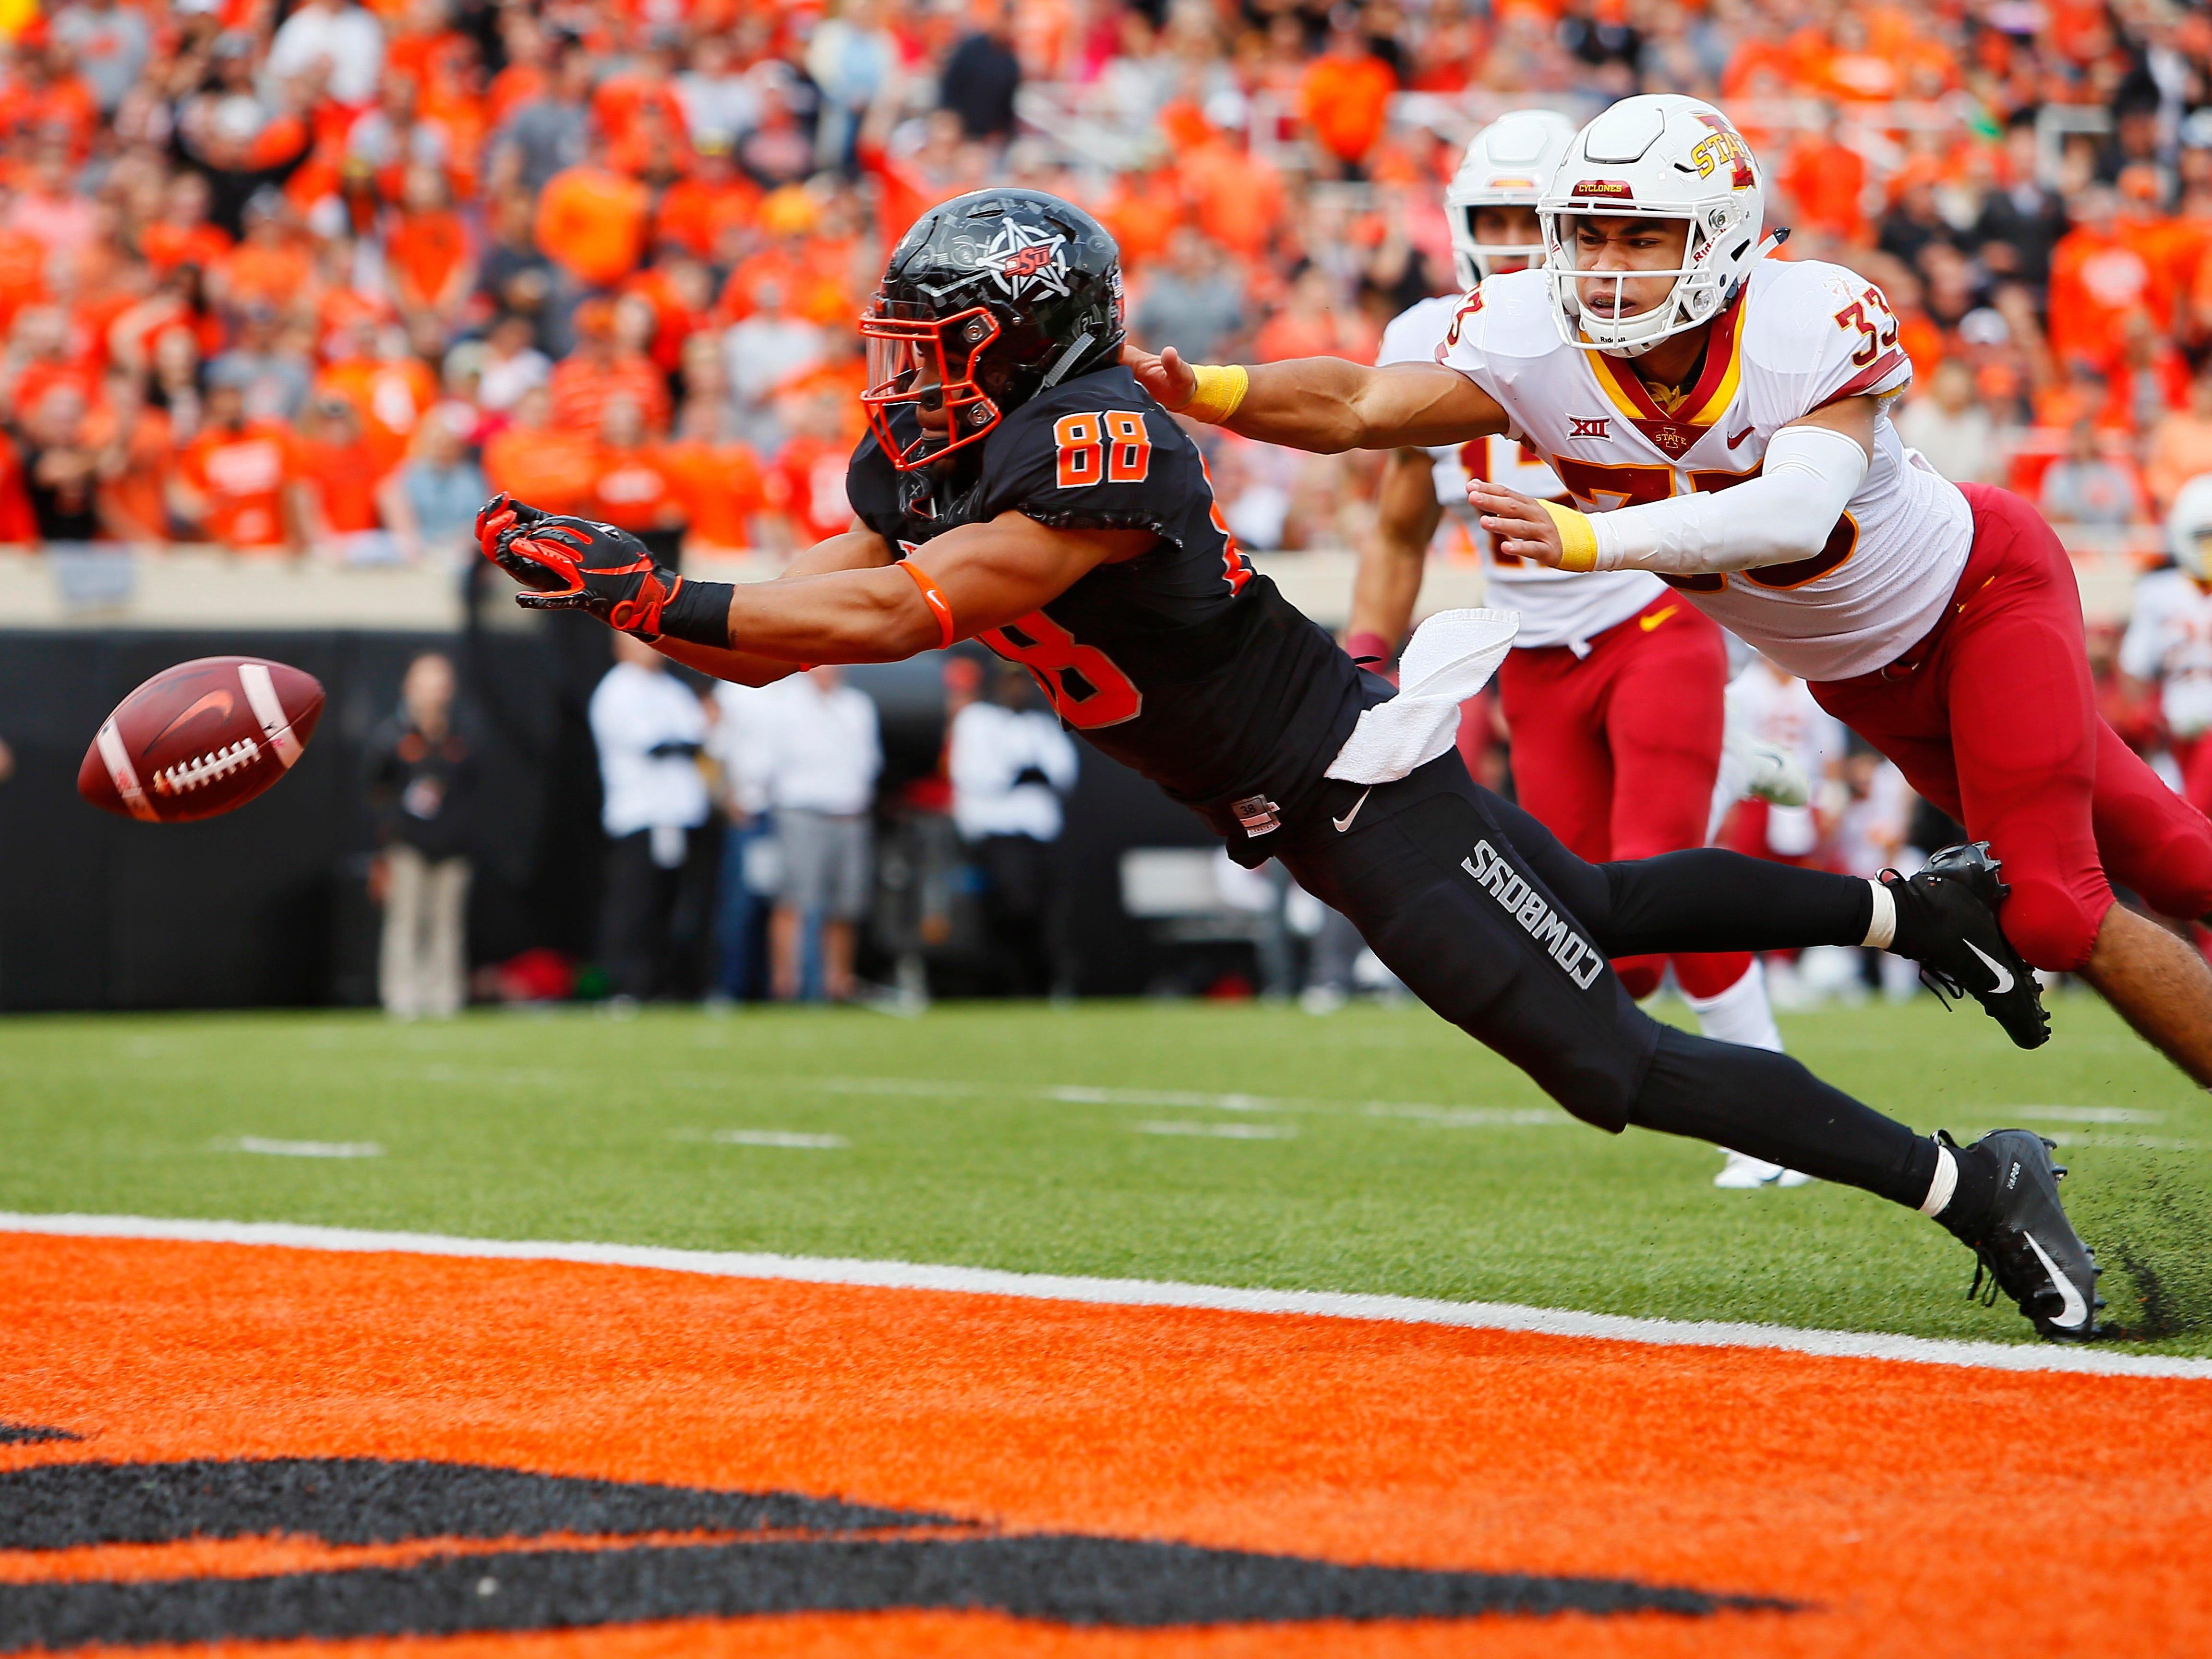 STILLWATER, OK - OCTOBER 6:  Wide receiver Landon Wolf #88 of the Oklahoma State Cowboys stretches only to have the ball go through his fingertips against defensive back Braxton Lewis #33 of the Iowa State Cyclones in the second quarter on October 6, 2018 at Boone Pickens Stadium in Stillwater, Oklahoma.